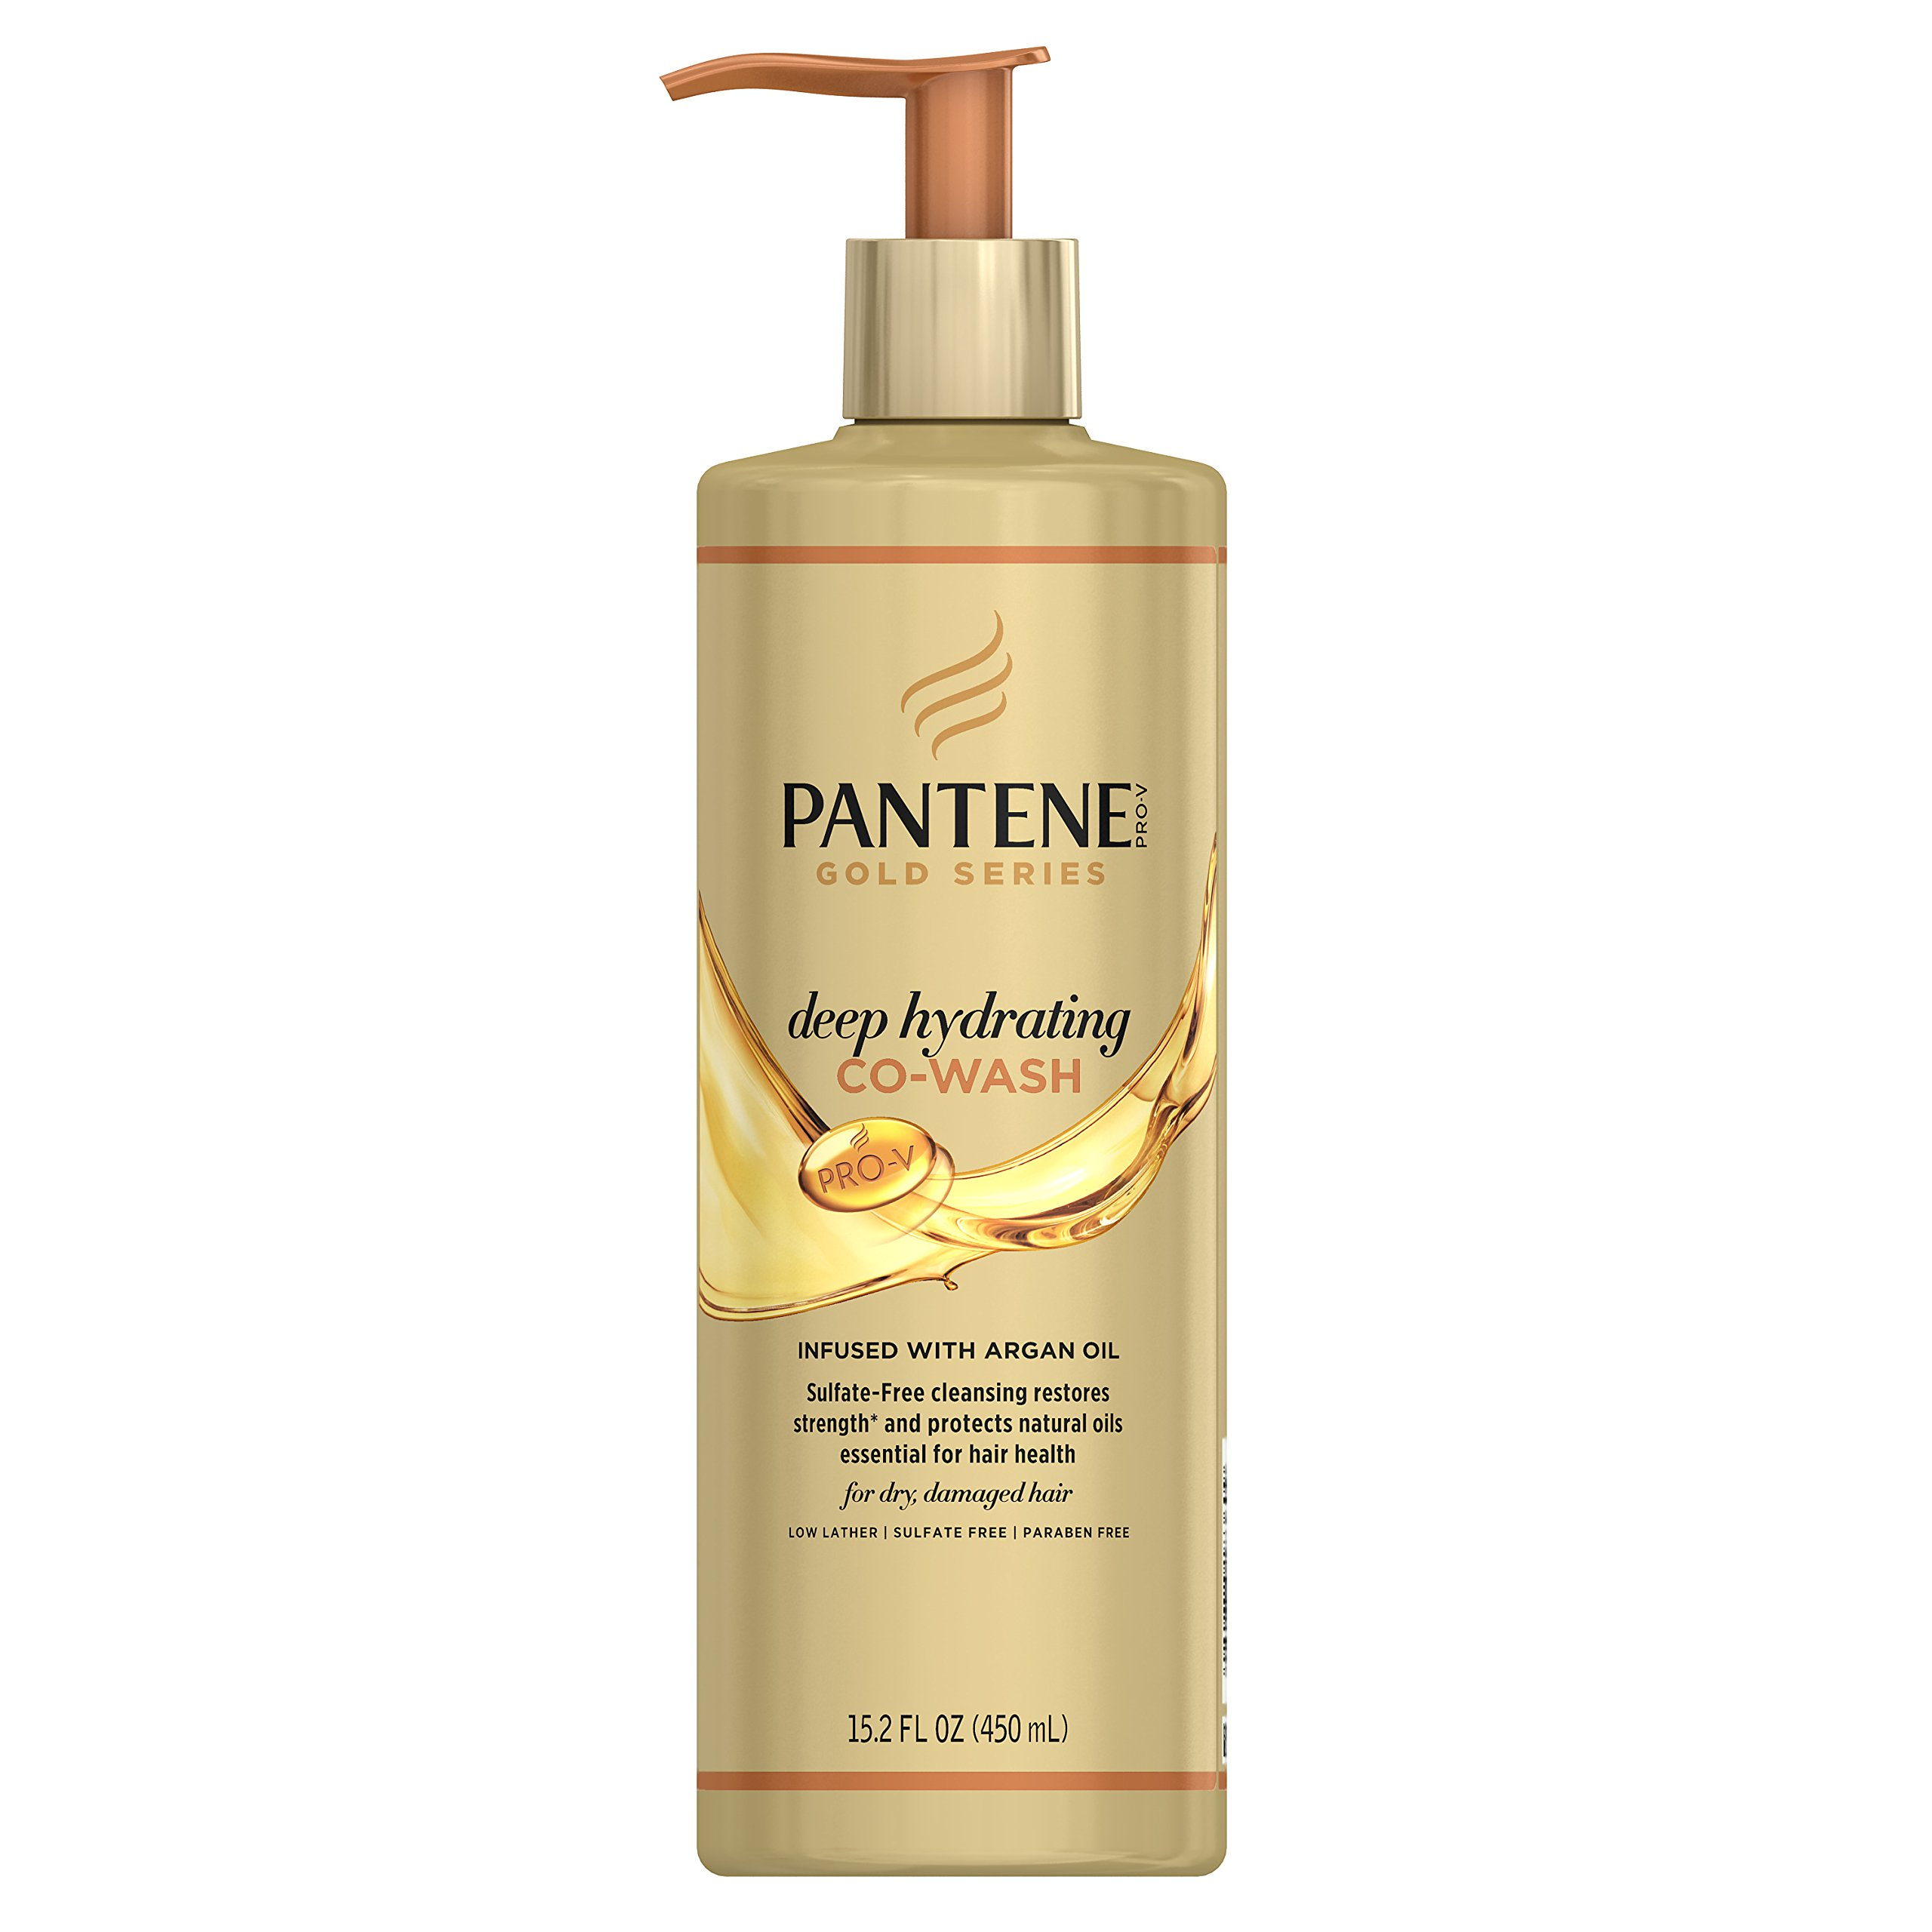 Pantene Gold Series Argan Oil Sulfate Free Curl Sleek Baby Laundry Detergent 450ml Defining Pudding Cream For Natural And Curly Textured Hair Beauty